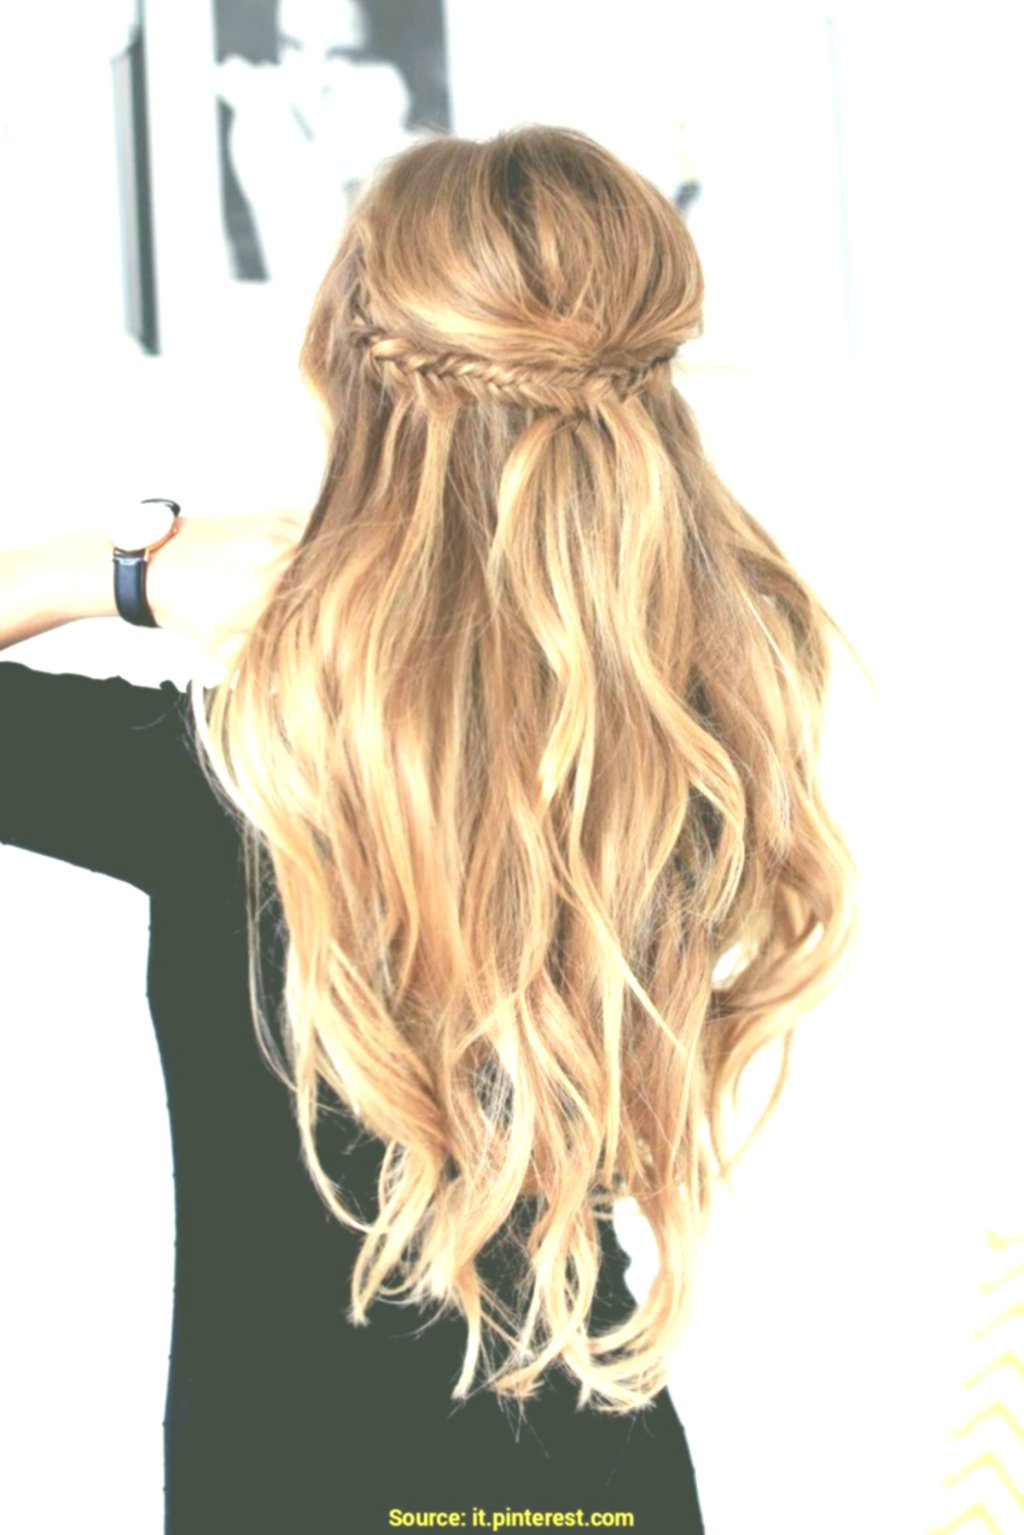 Inspirational curly hair hairstyles plan-Inspirational Curly hair hairstyles architecture